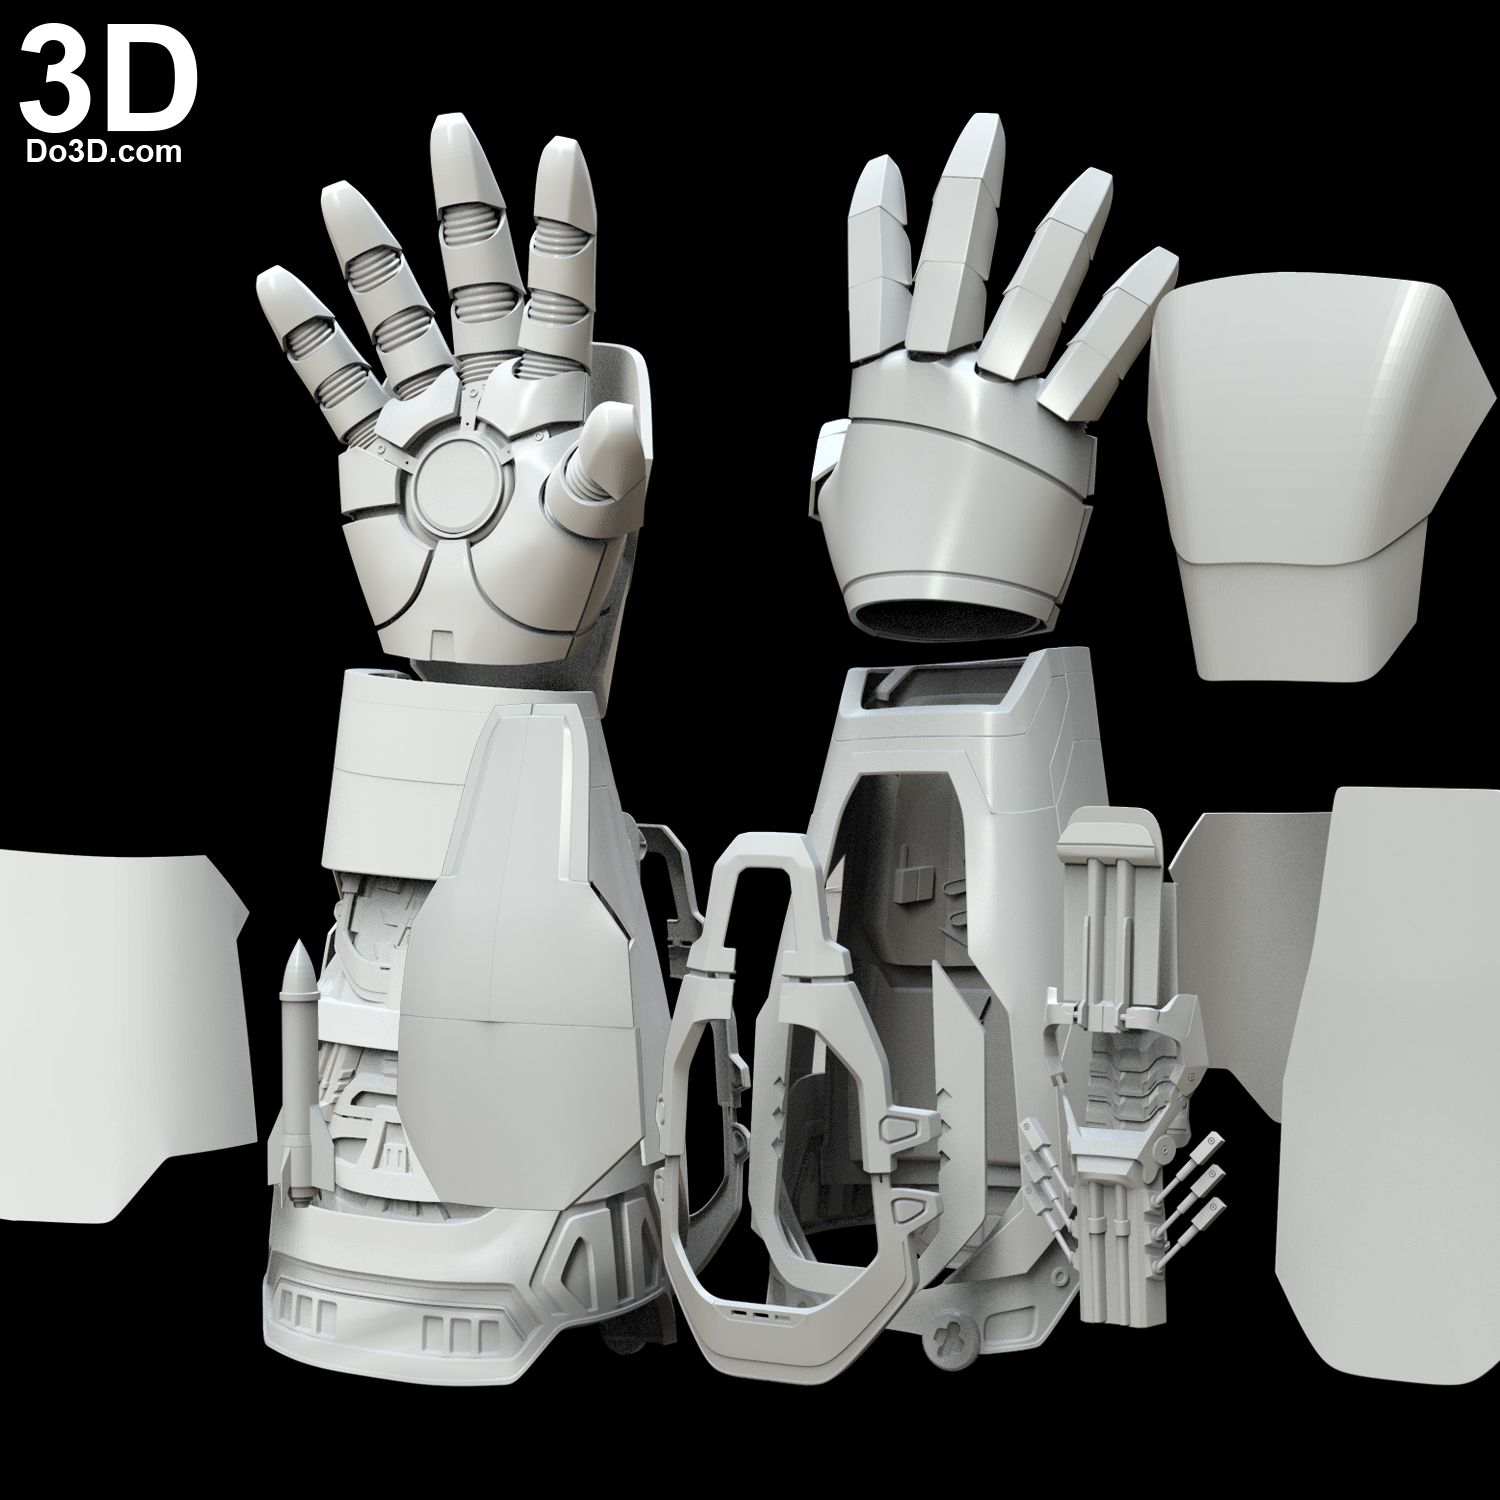 3d Printable Iron Man Mark Xlii Model Mk 42 Gauntlet Hand Glove Forearm With Missile Rocket Shooter Print File Format S Iron Man Hand Iron Man Iron Man Cosplay